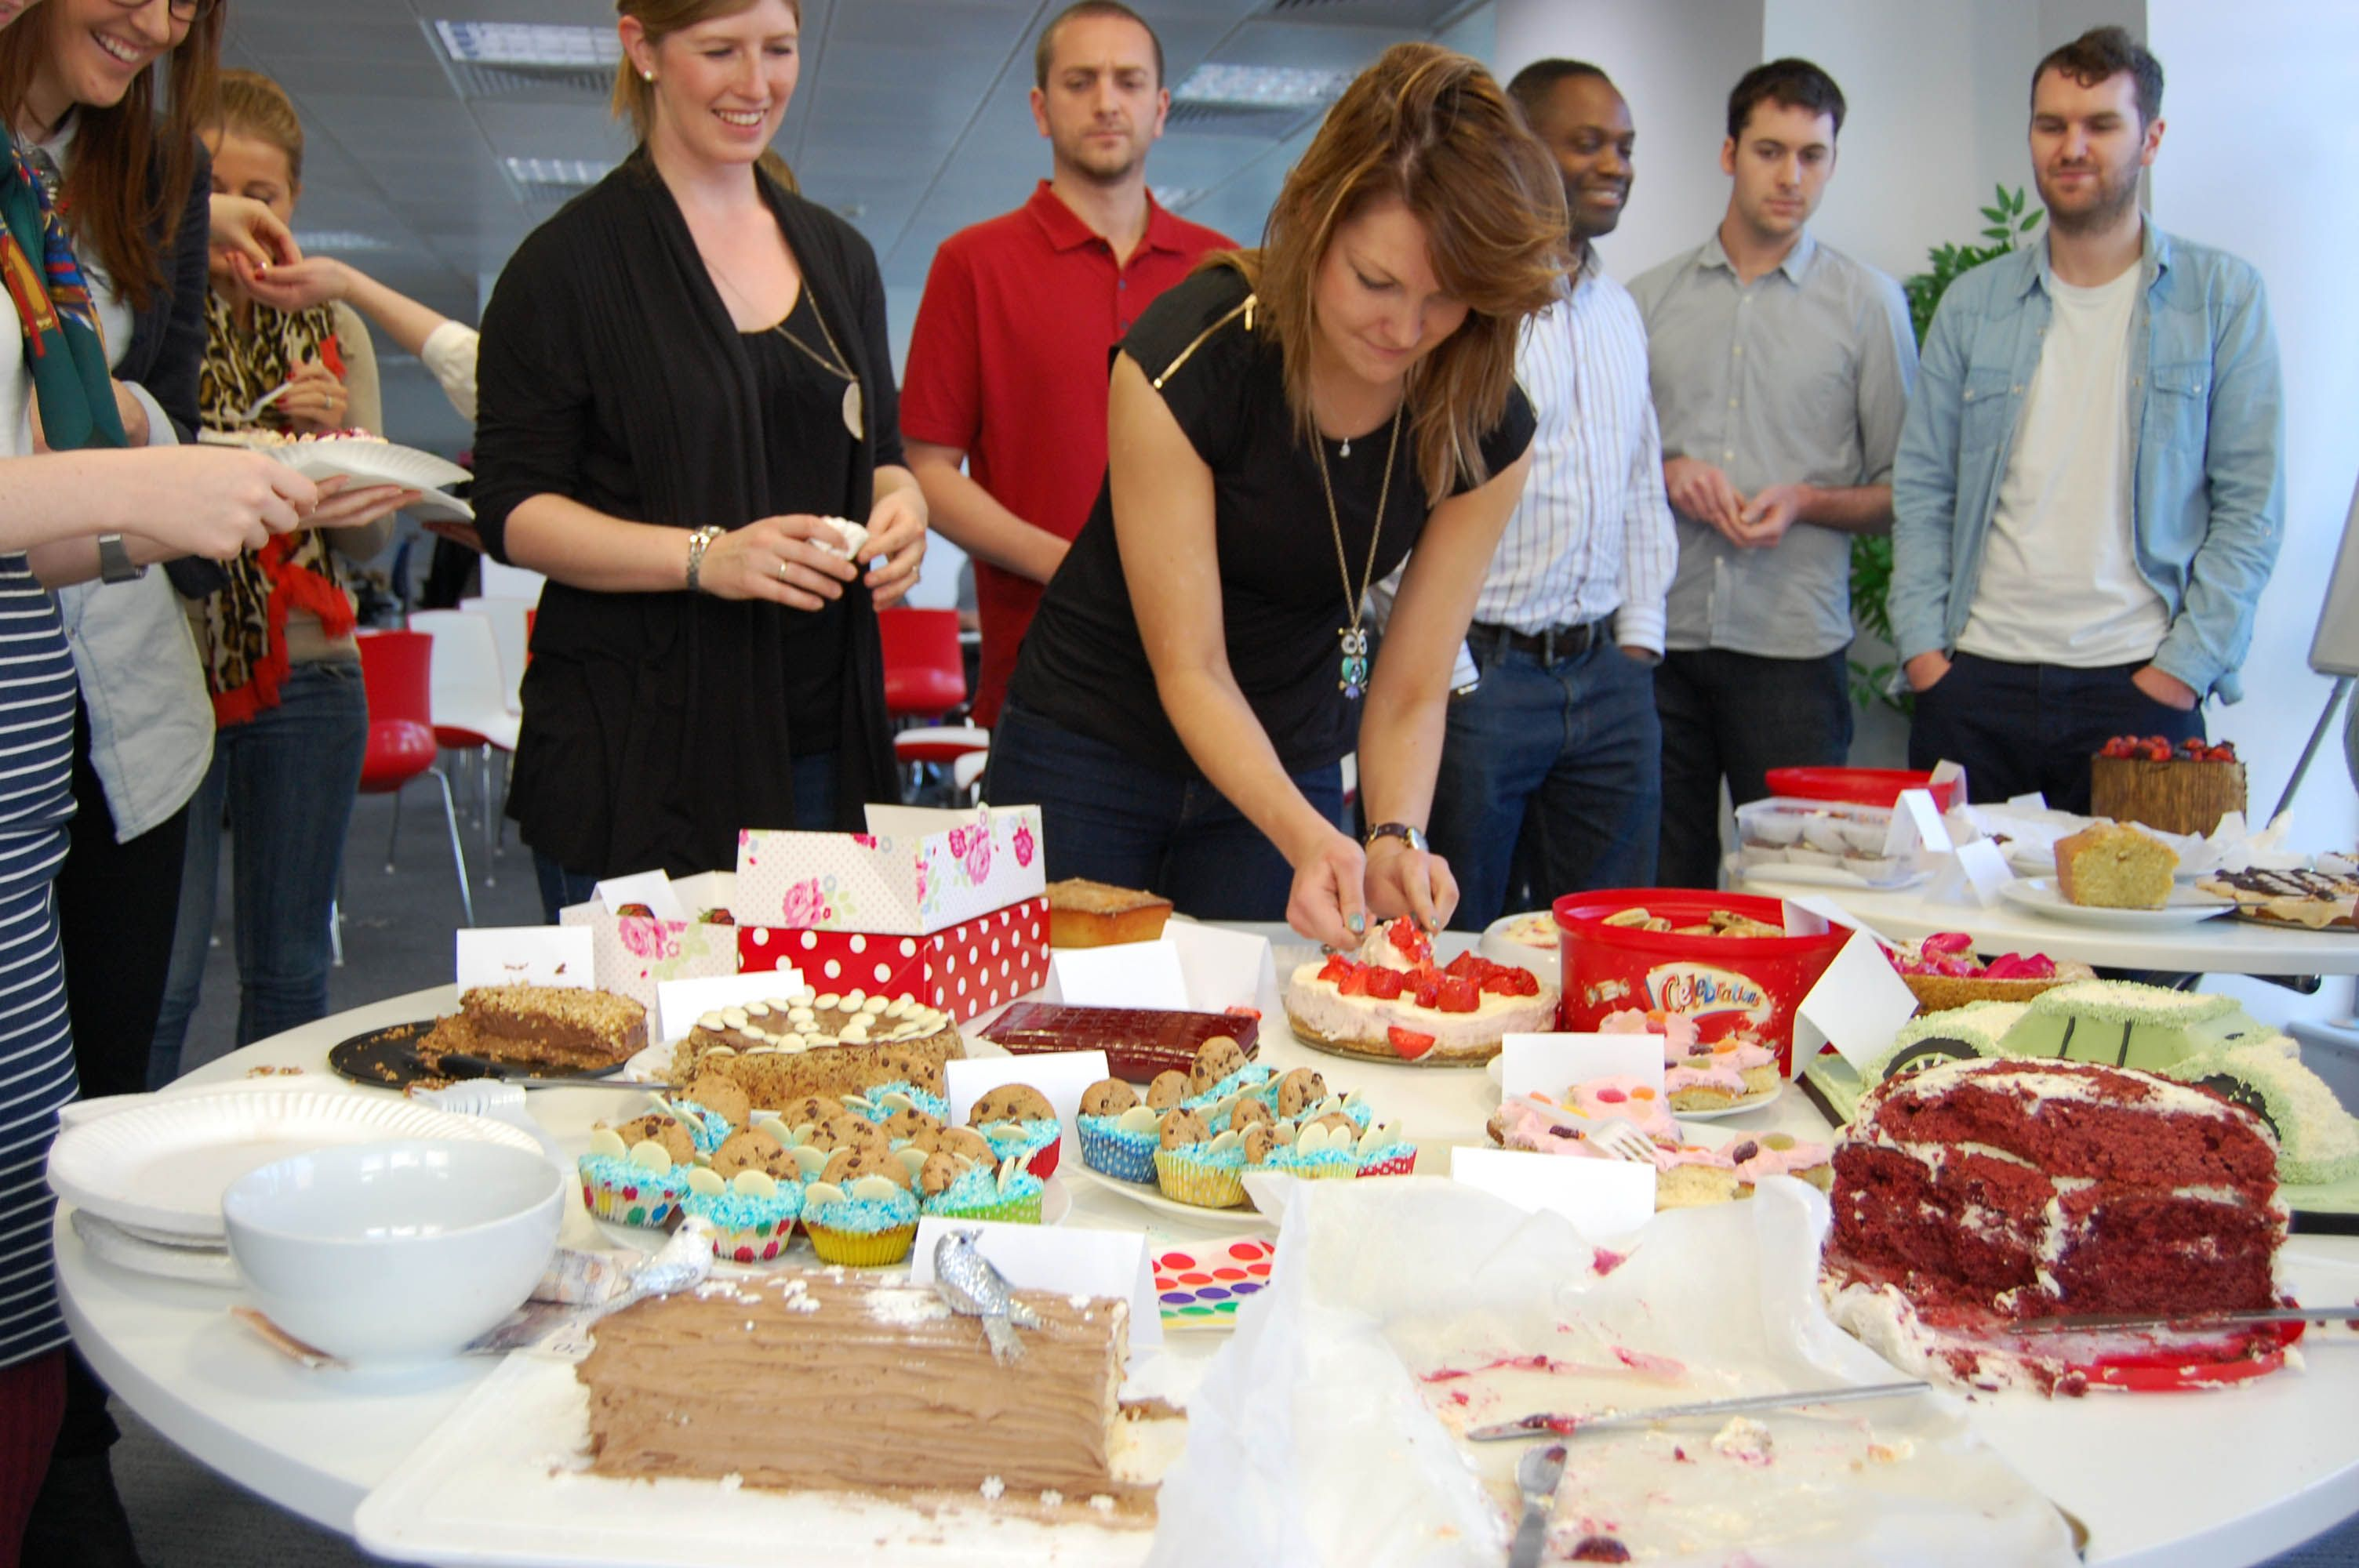 Team TMG really know how to do a cake off! Calories don't count if it's for charity @SSChospices ...nom, nom, nom.